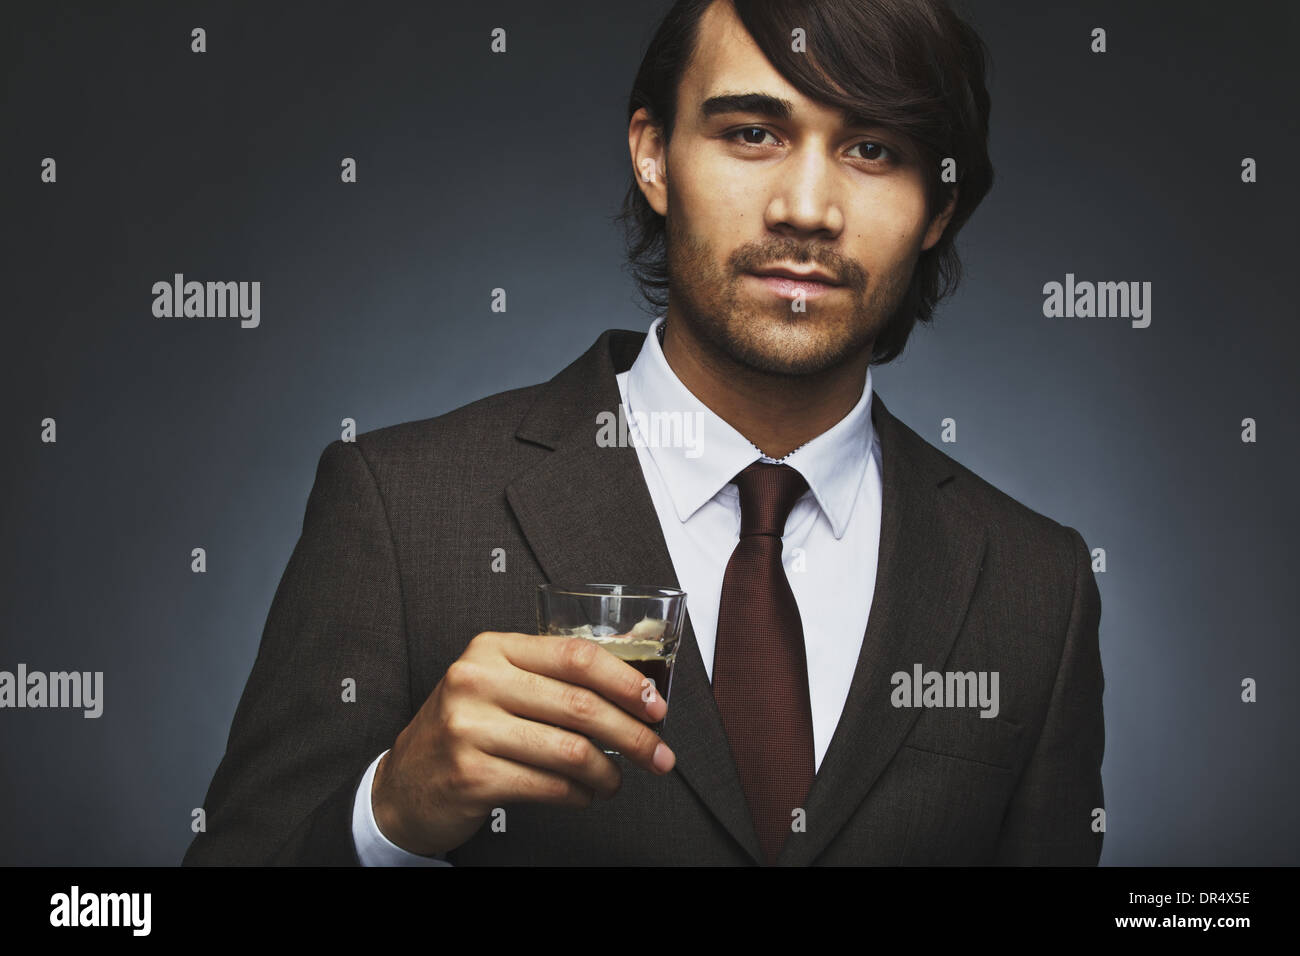 Closeup portrait of attractive young man in business suit holding a cup of coffee in hand. Asian male business executive - Stock Image